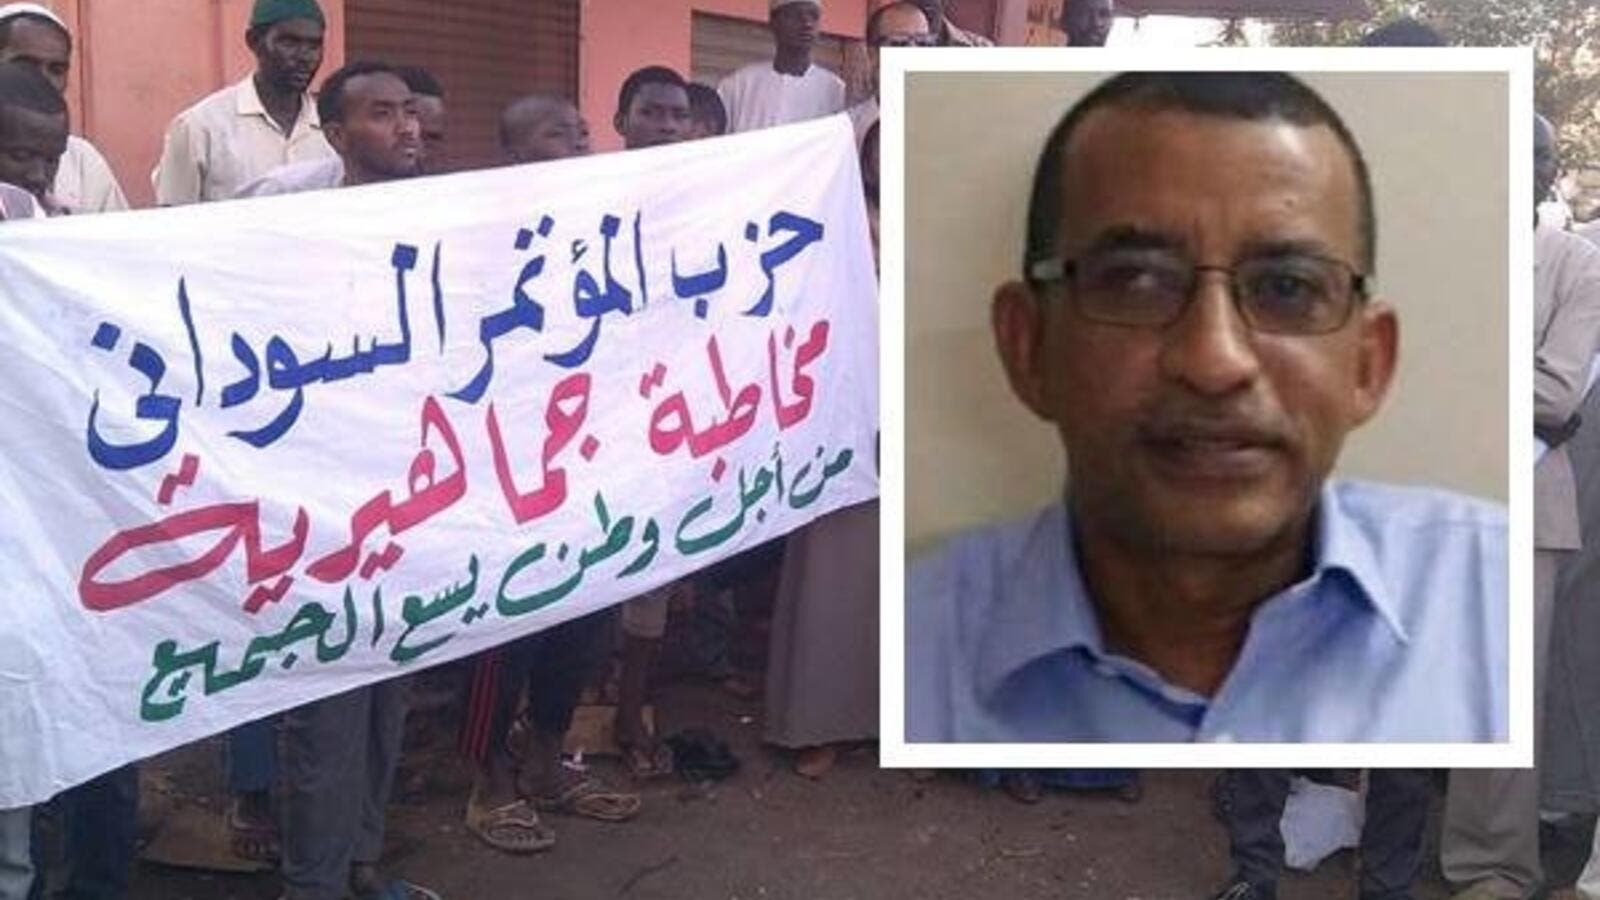 Sudanese authorities have released a senior opposition leader who had been detained since December in connection with demonstrations against President Omar al-Bashir's rule (Twitter)